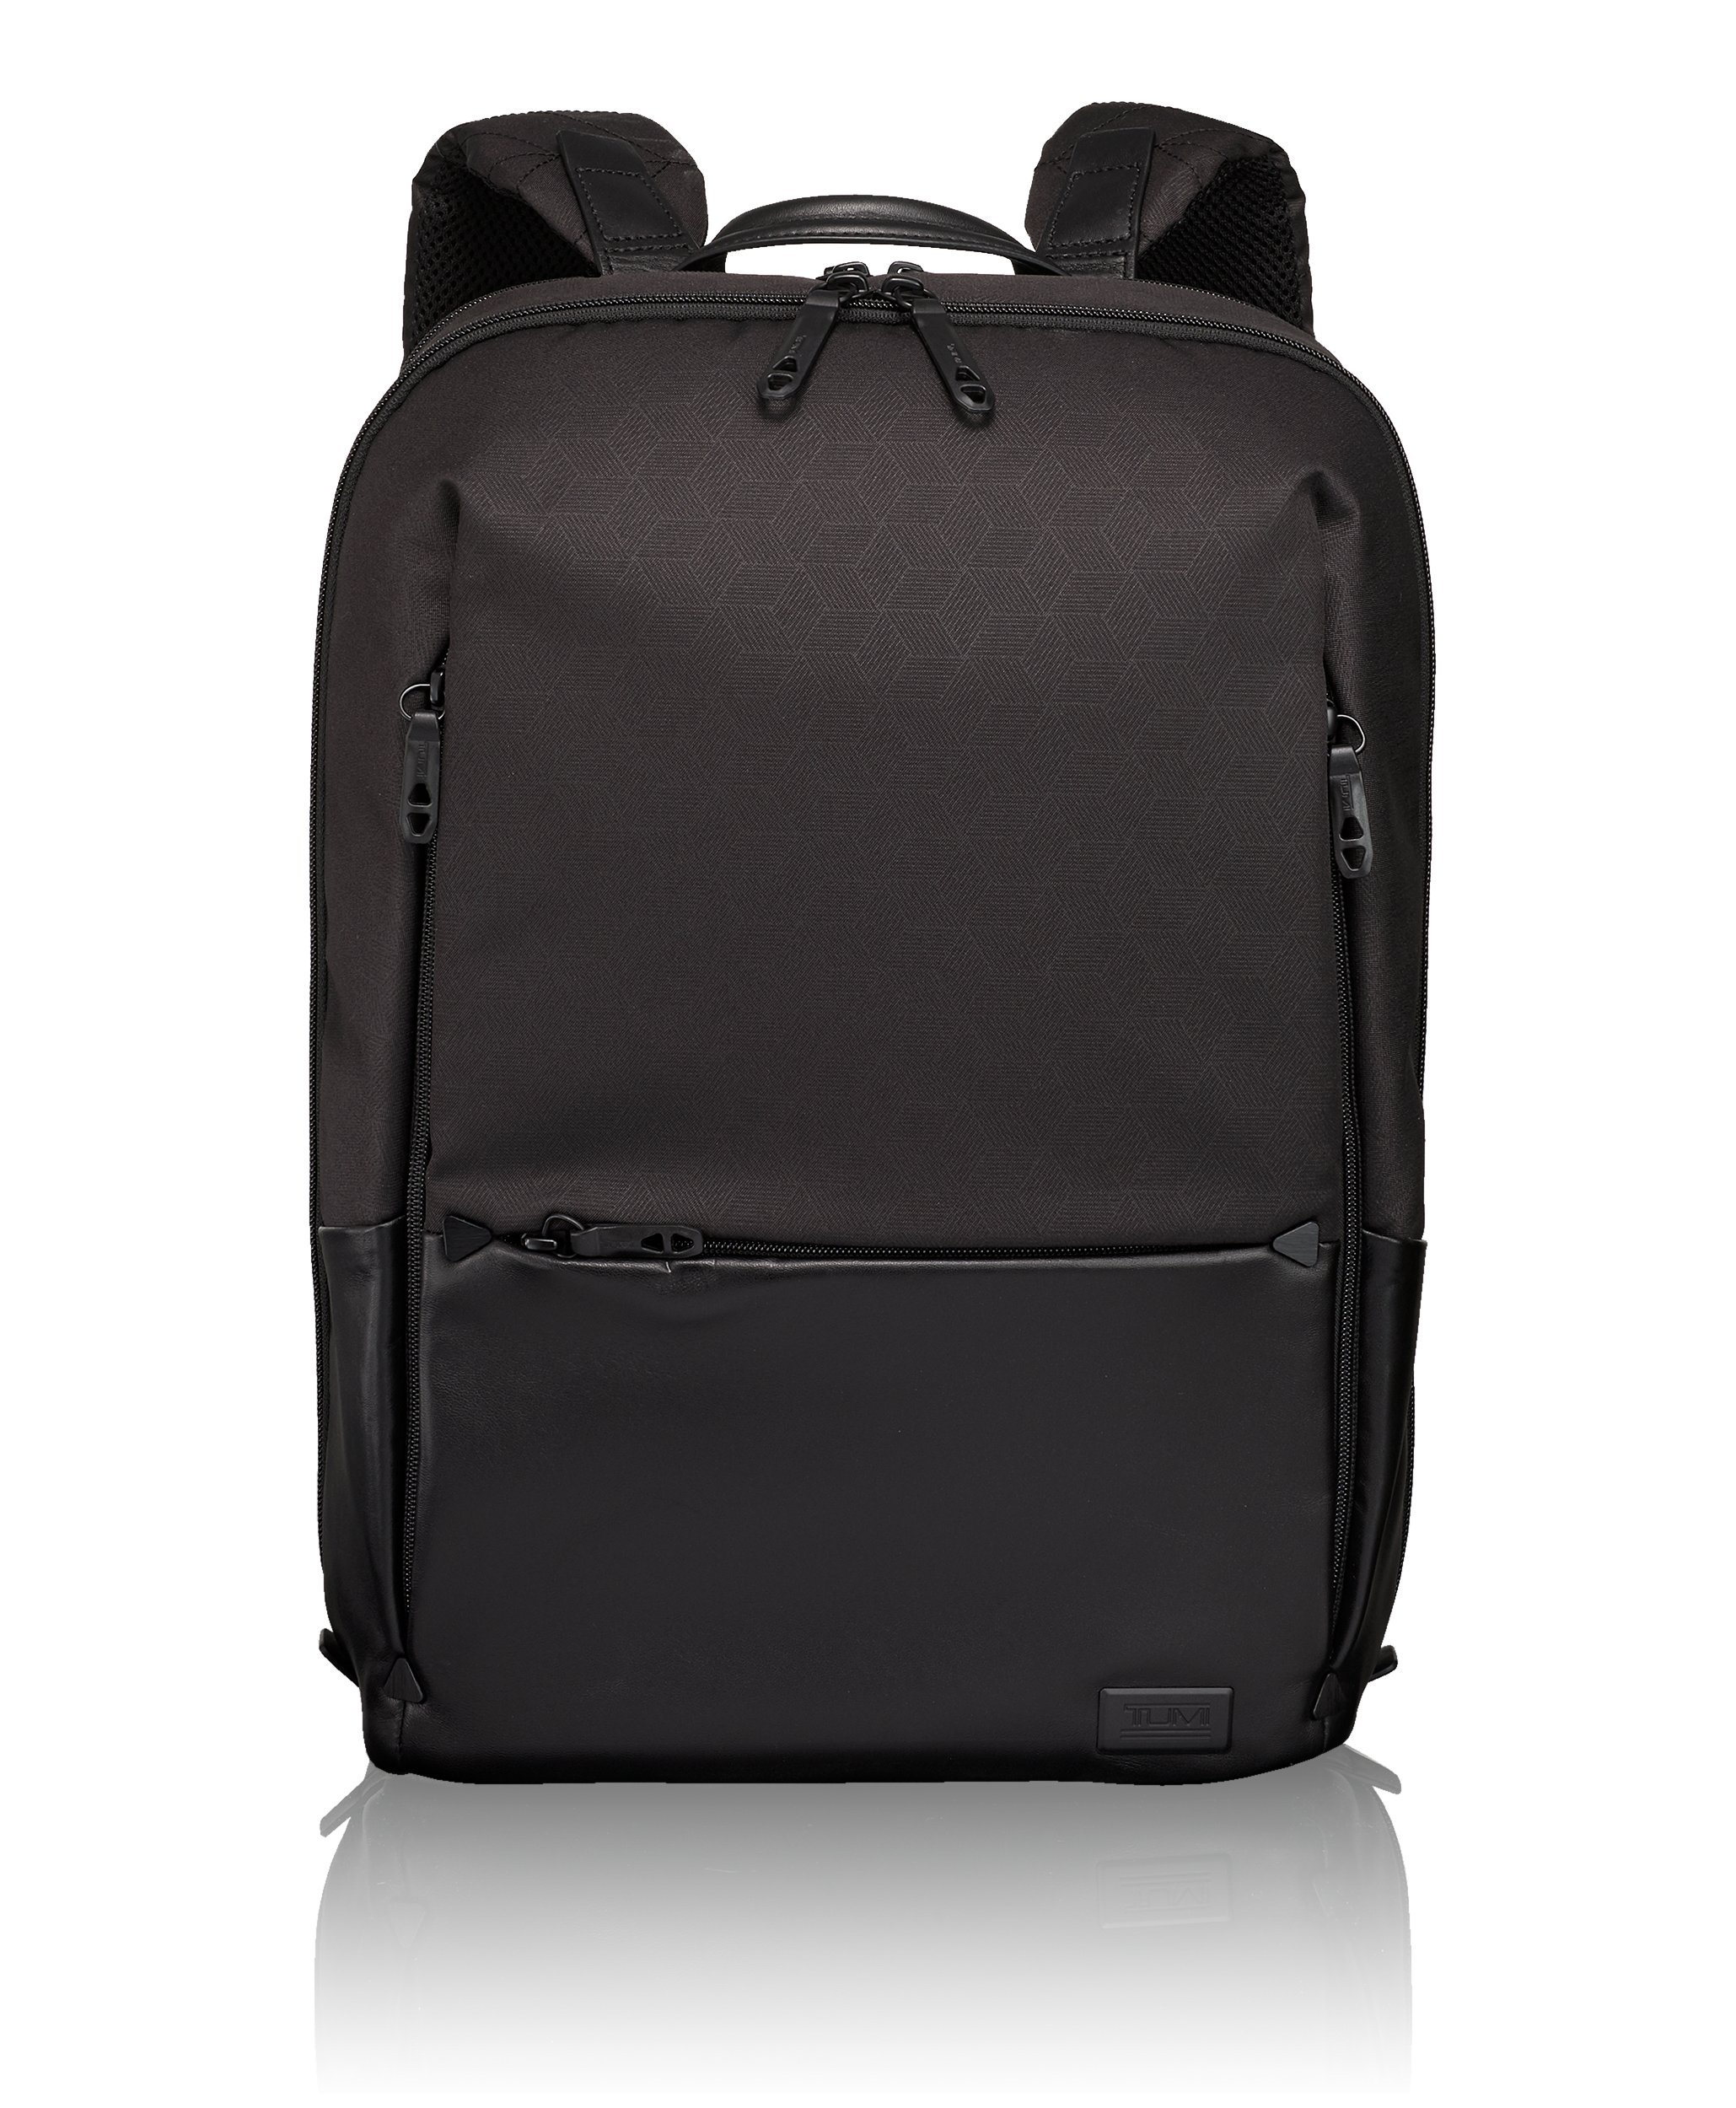 Tumi Tahoe Butler Backpack, Black, One Size